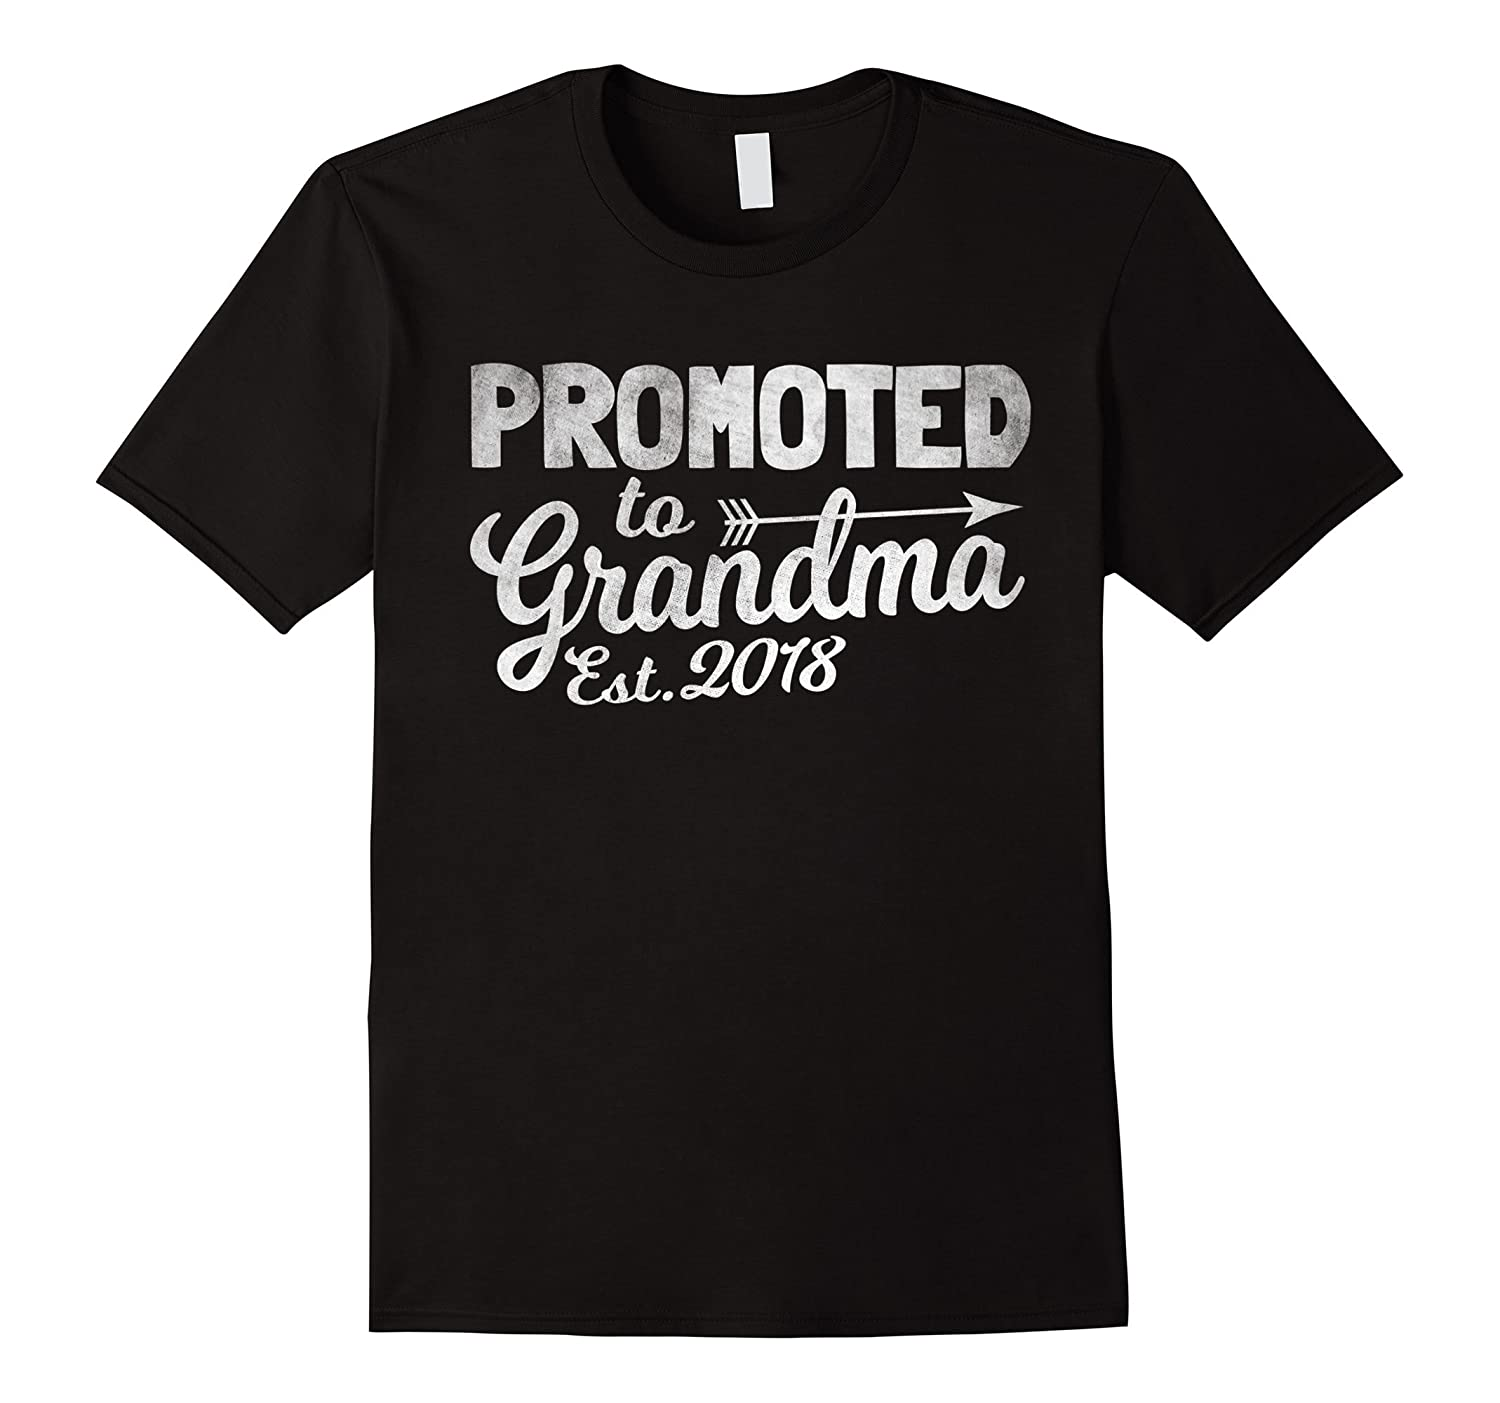 70c1fbb3a7 Funny New Grandma Shirt – Promoted To Grandma Est. 2018 Tee-RT ...